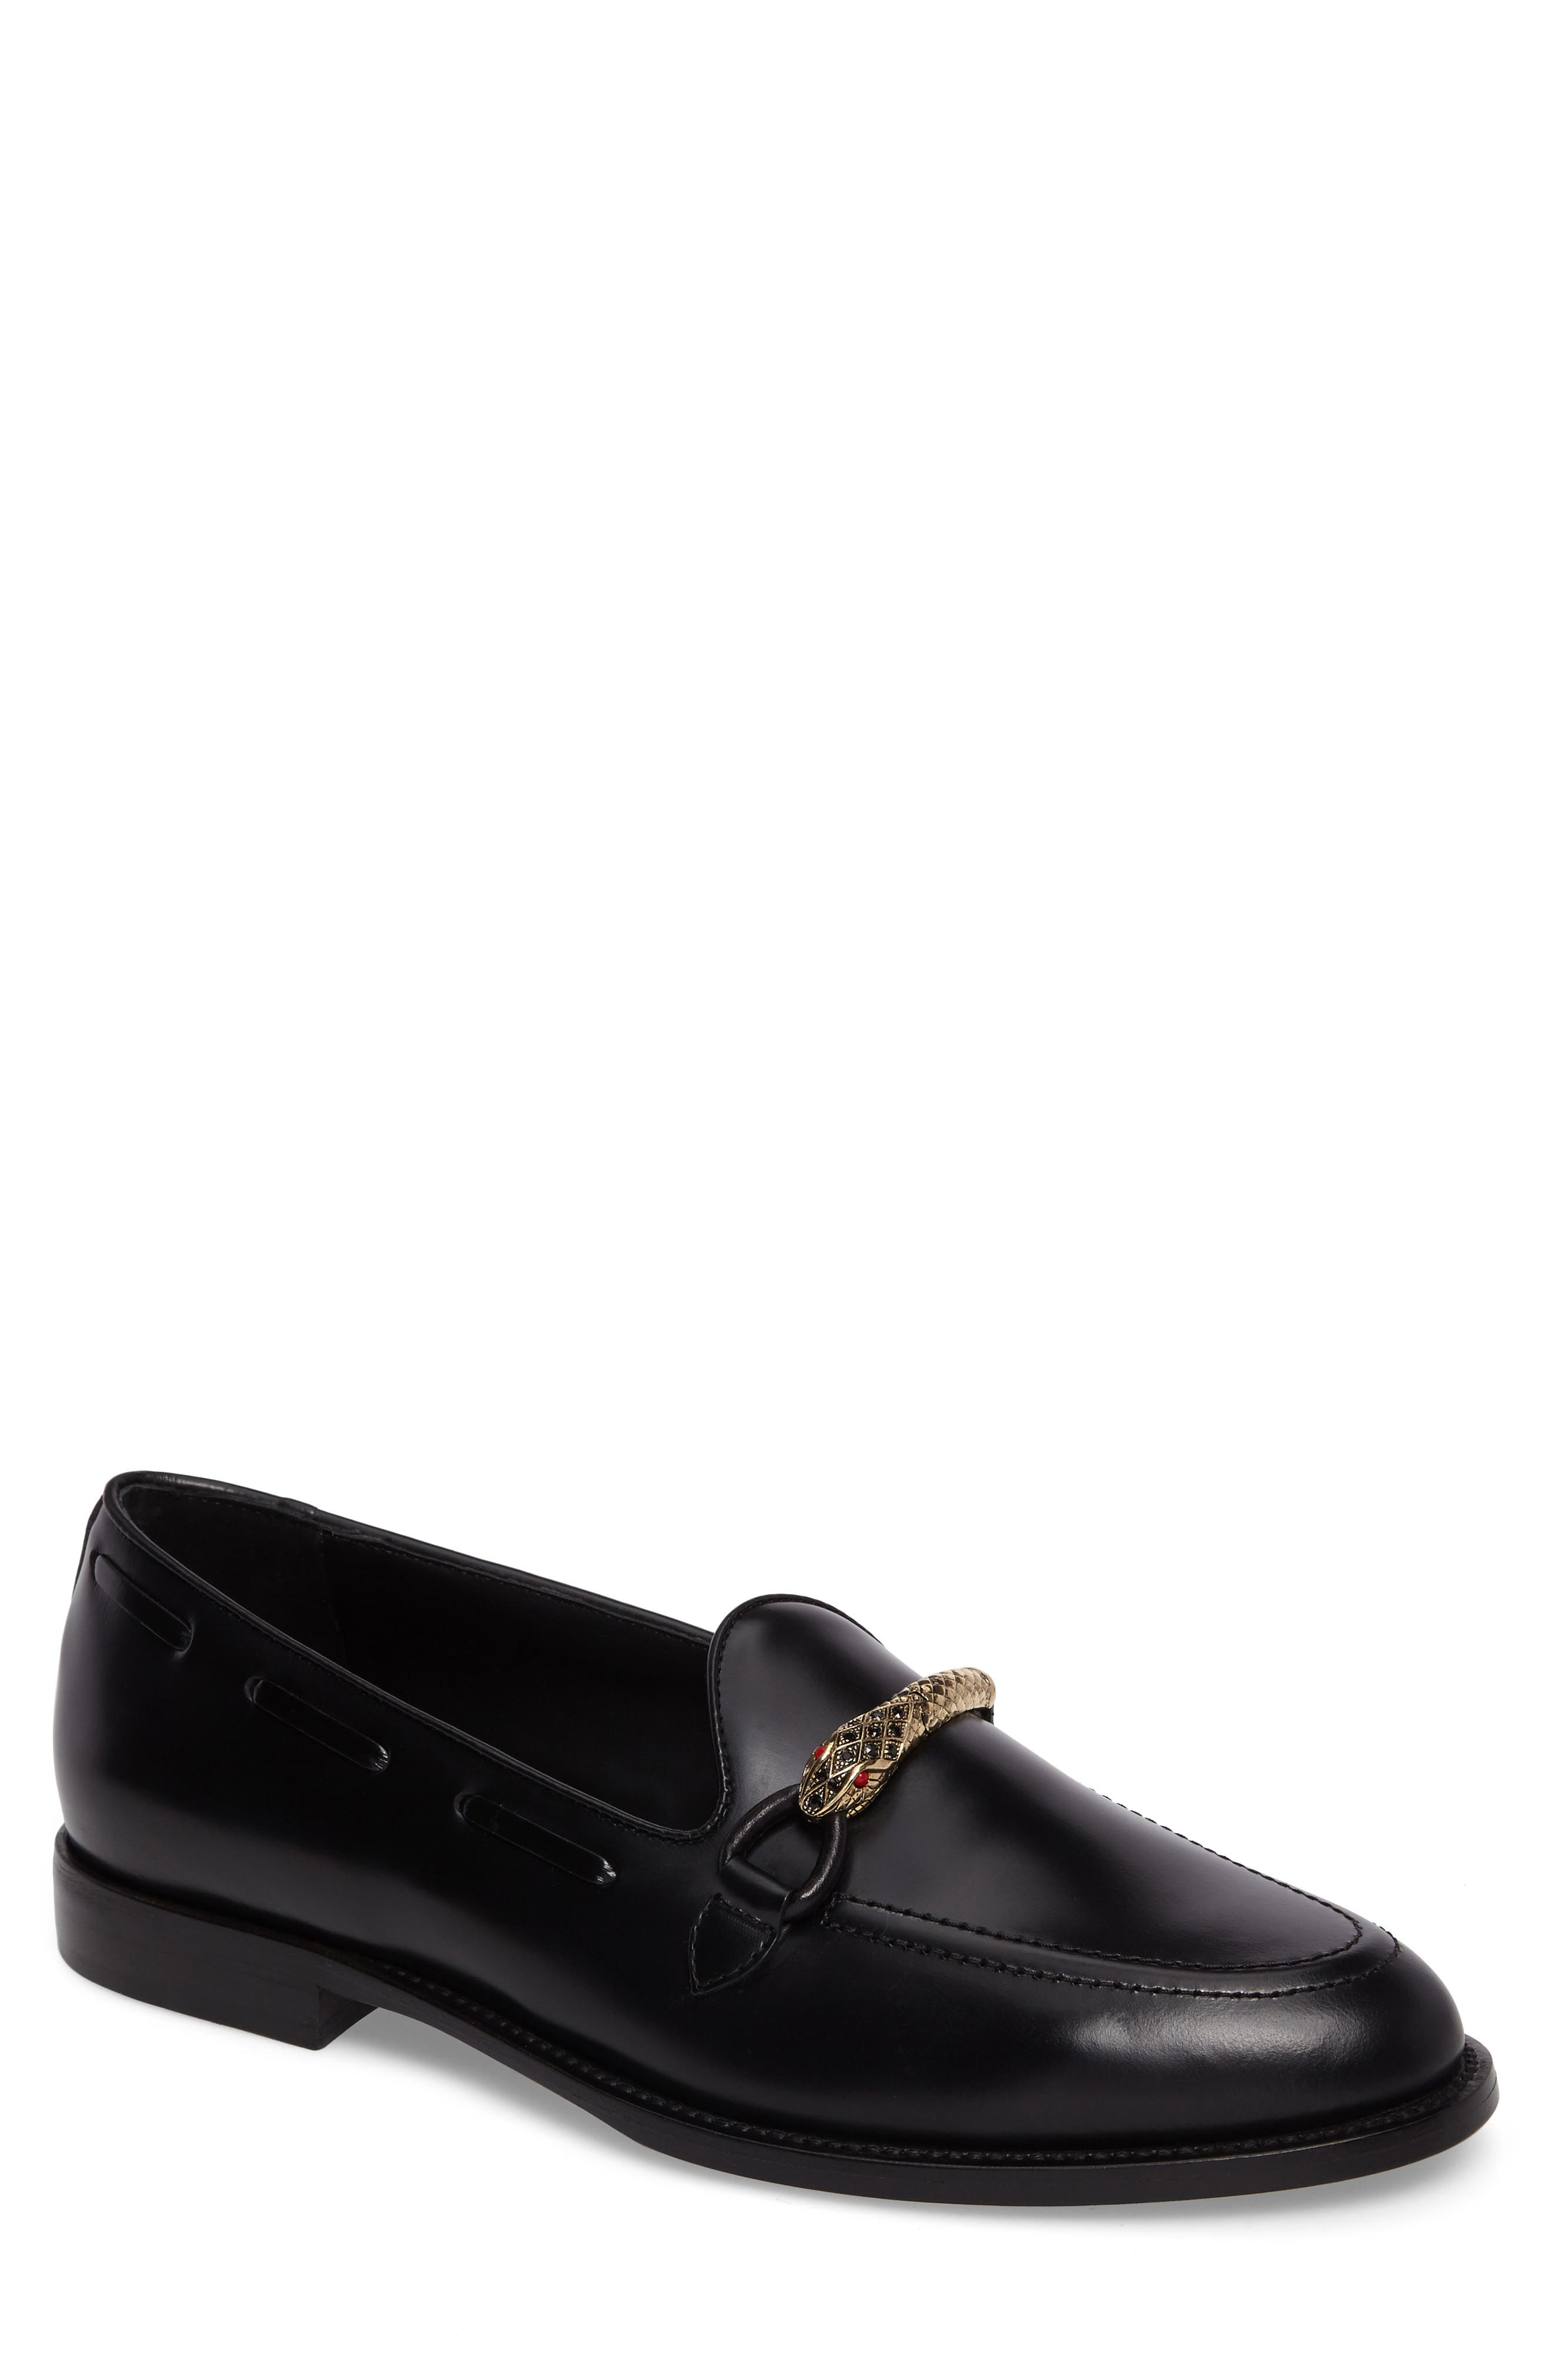 Serpent Bit Loafer,                         Main,                         color, Nero Leather